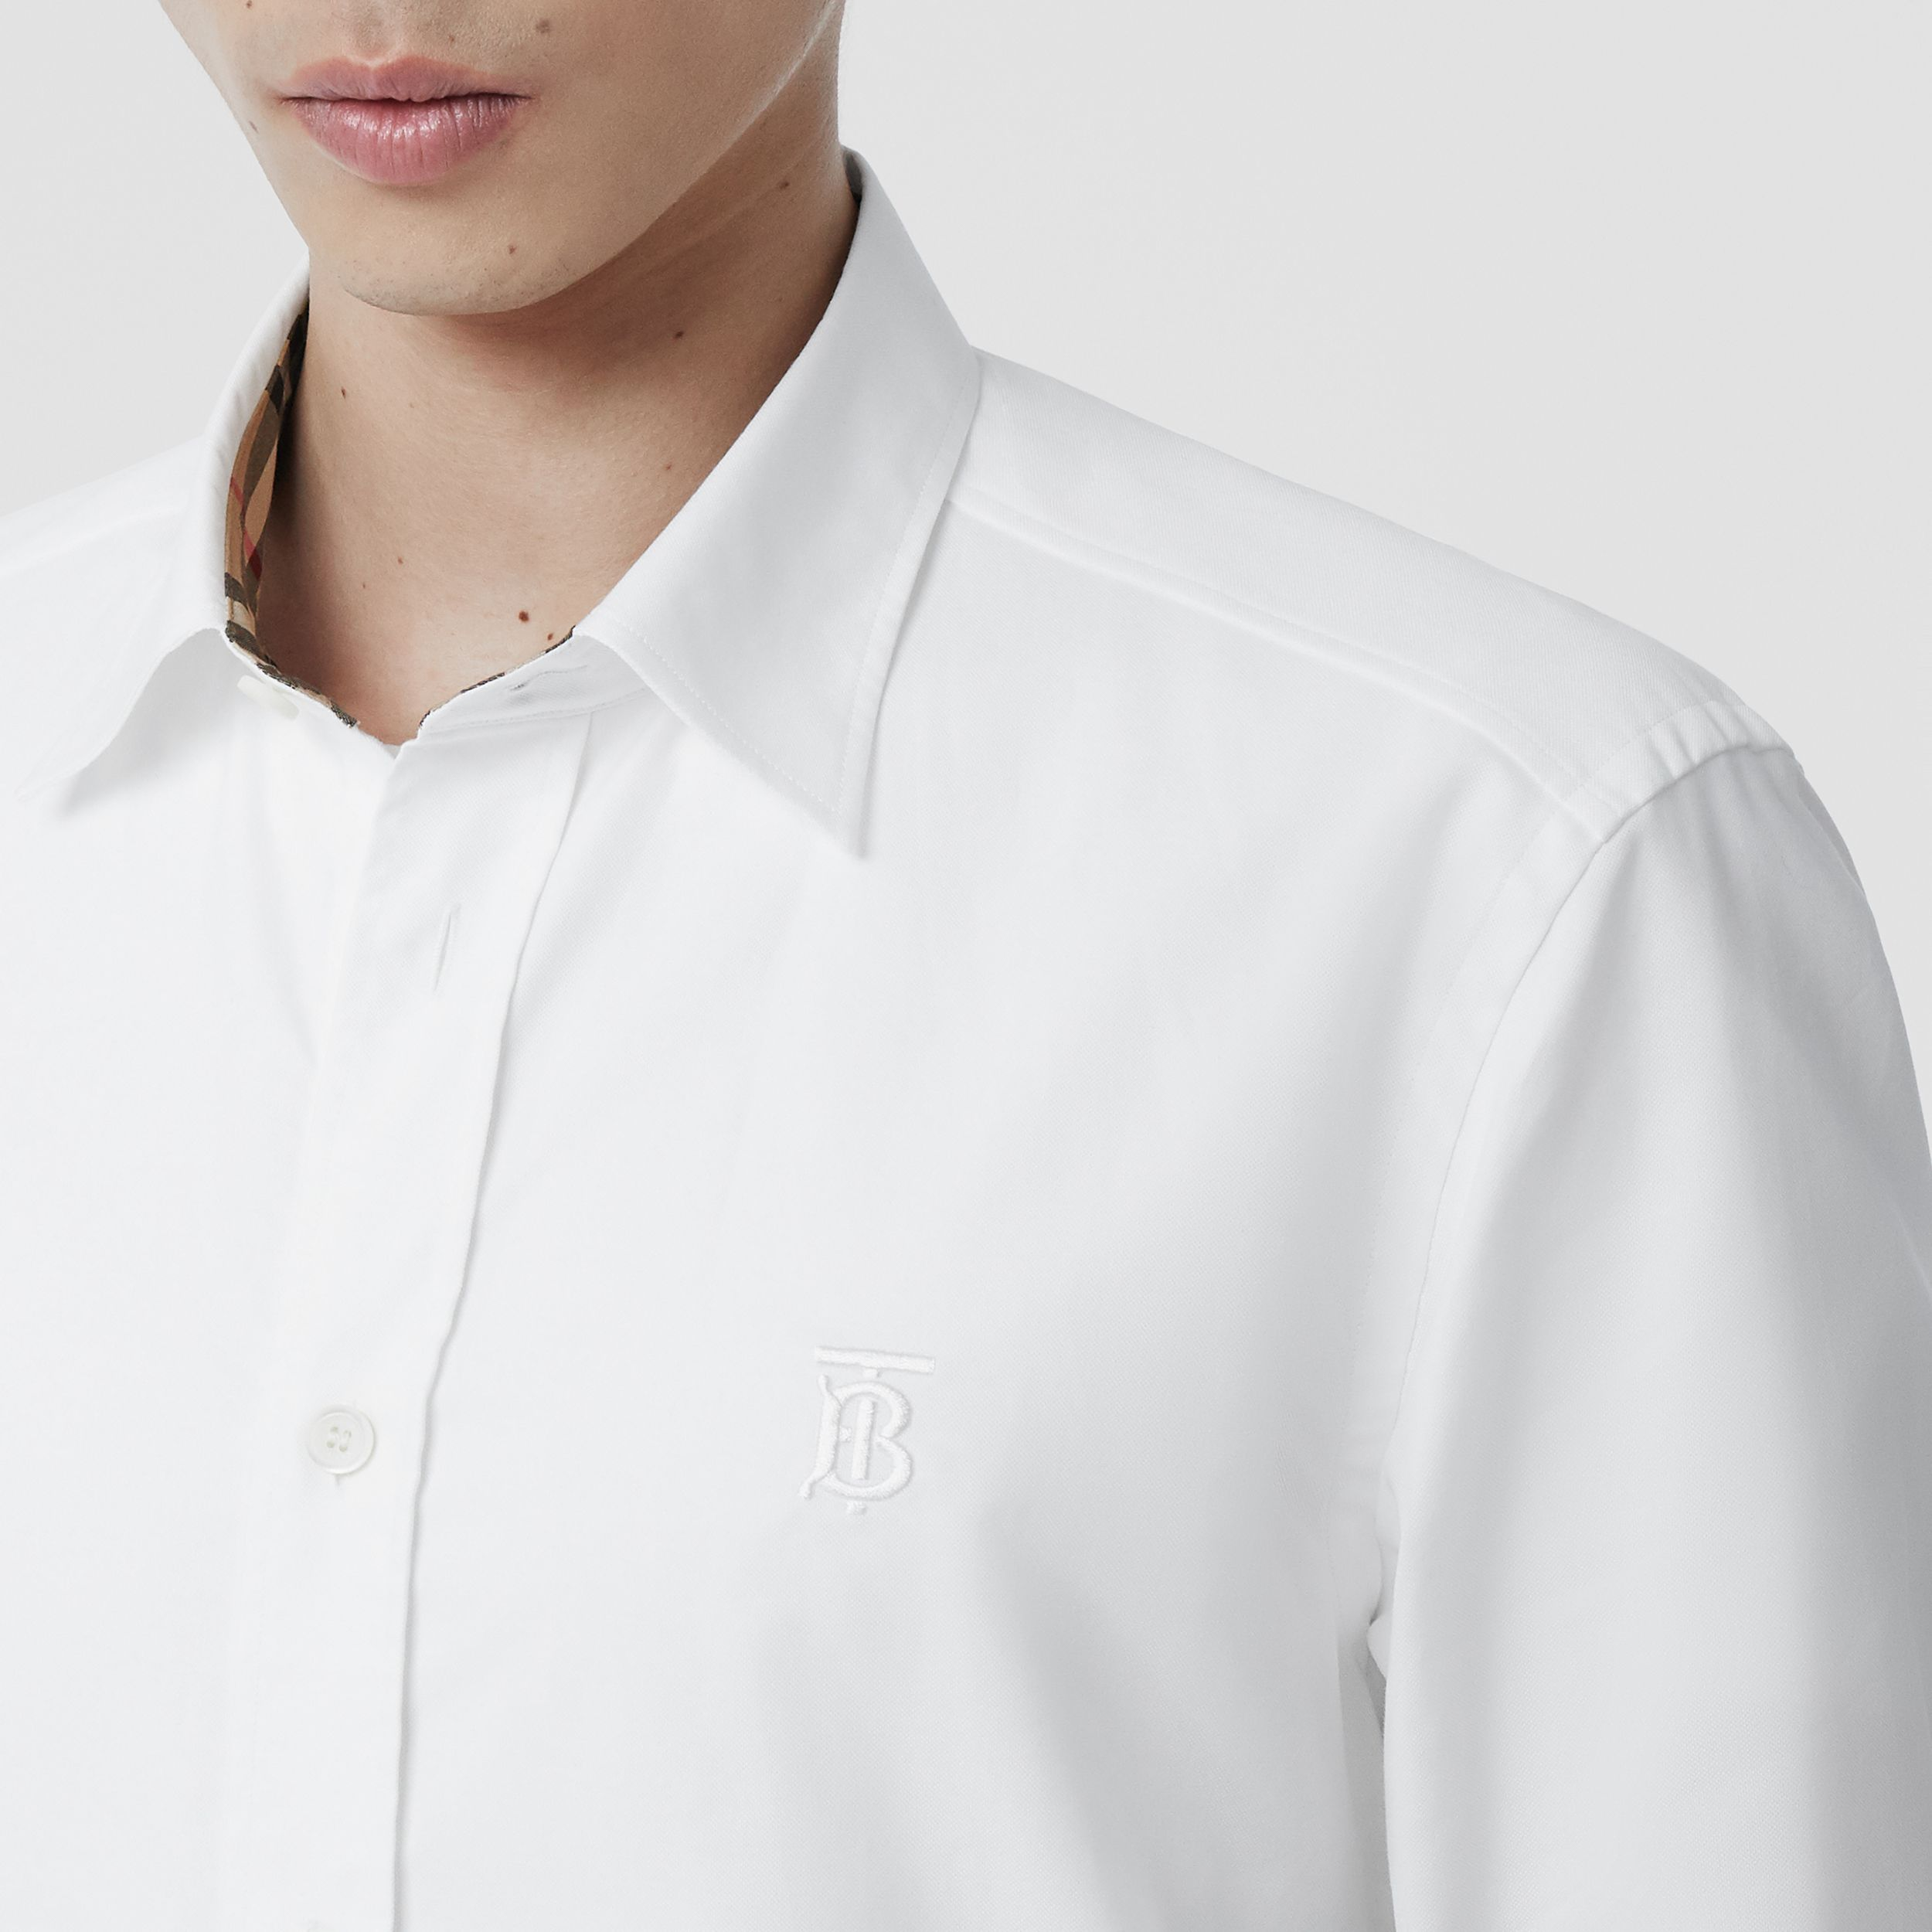 Monogram Motif Cotton Oxford Shirt in White - Men | Burberry Hong Kong S.A.R. - 2